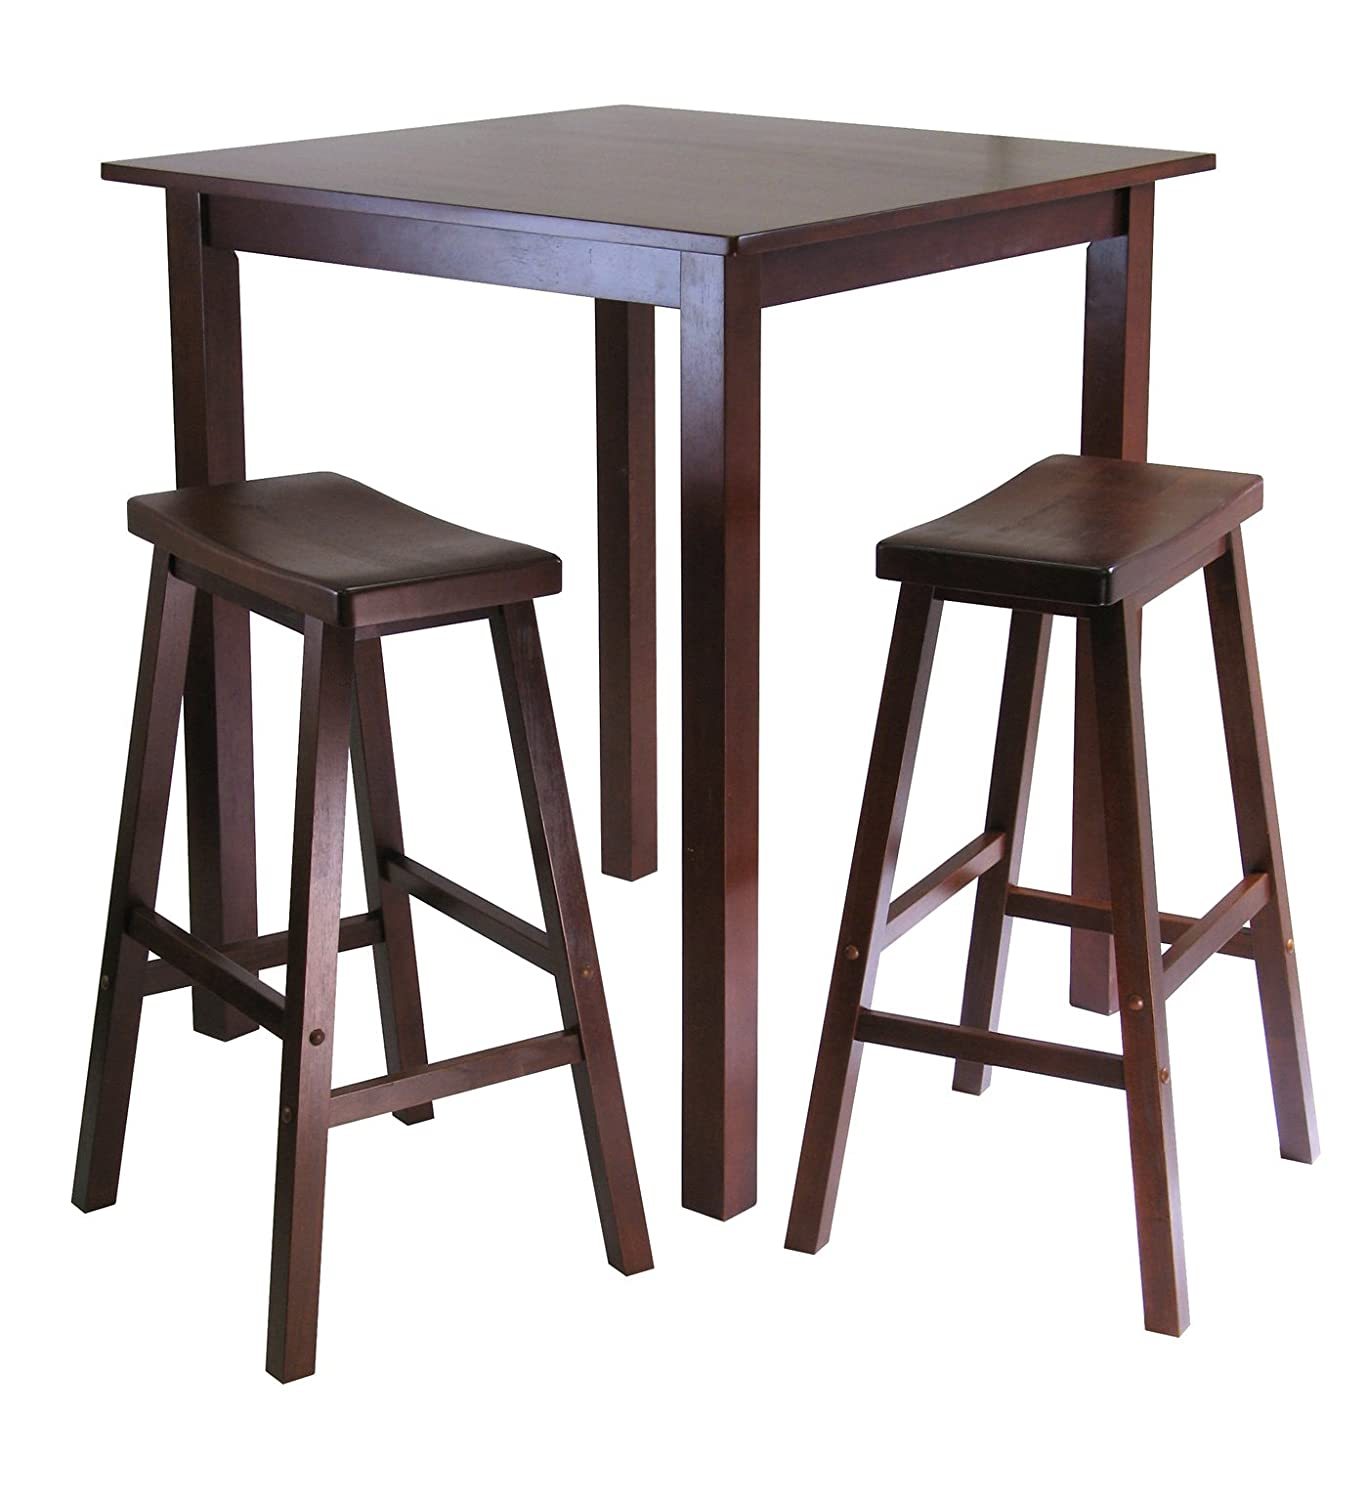 Small kitchen table sets for Small table and stool set